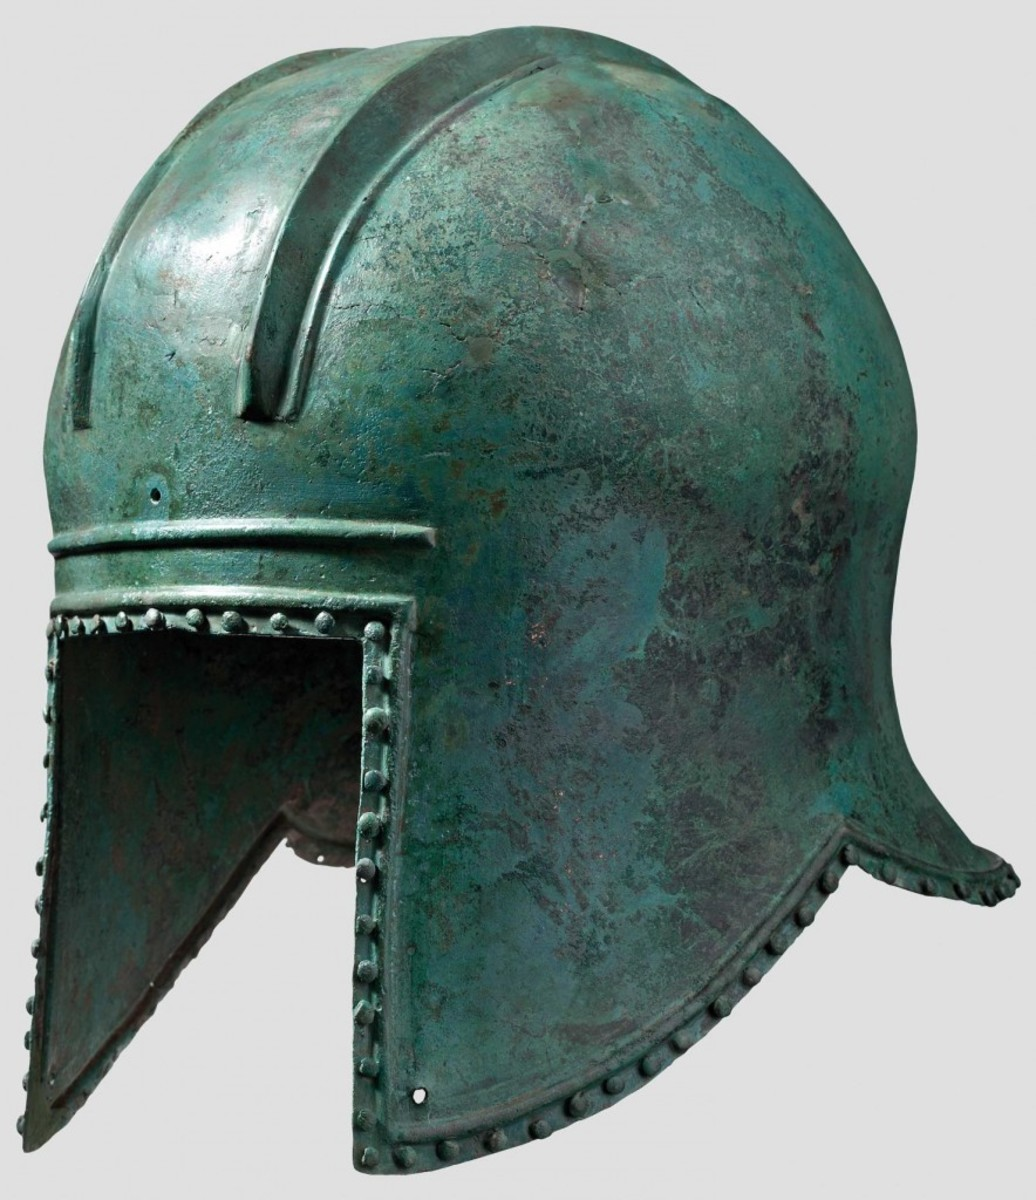 An Illyrian helmet, 6th century BC. Bronze with light green patina.